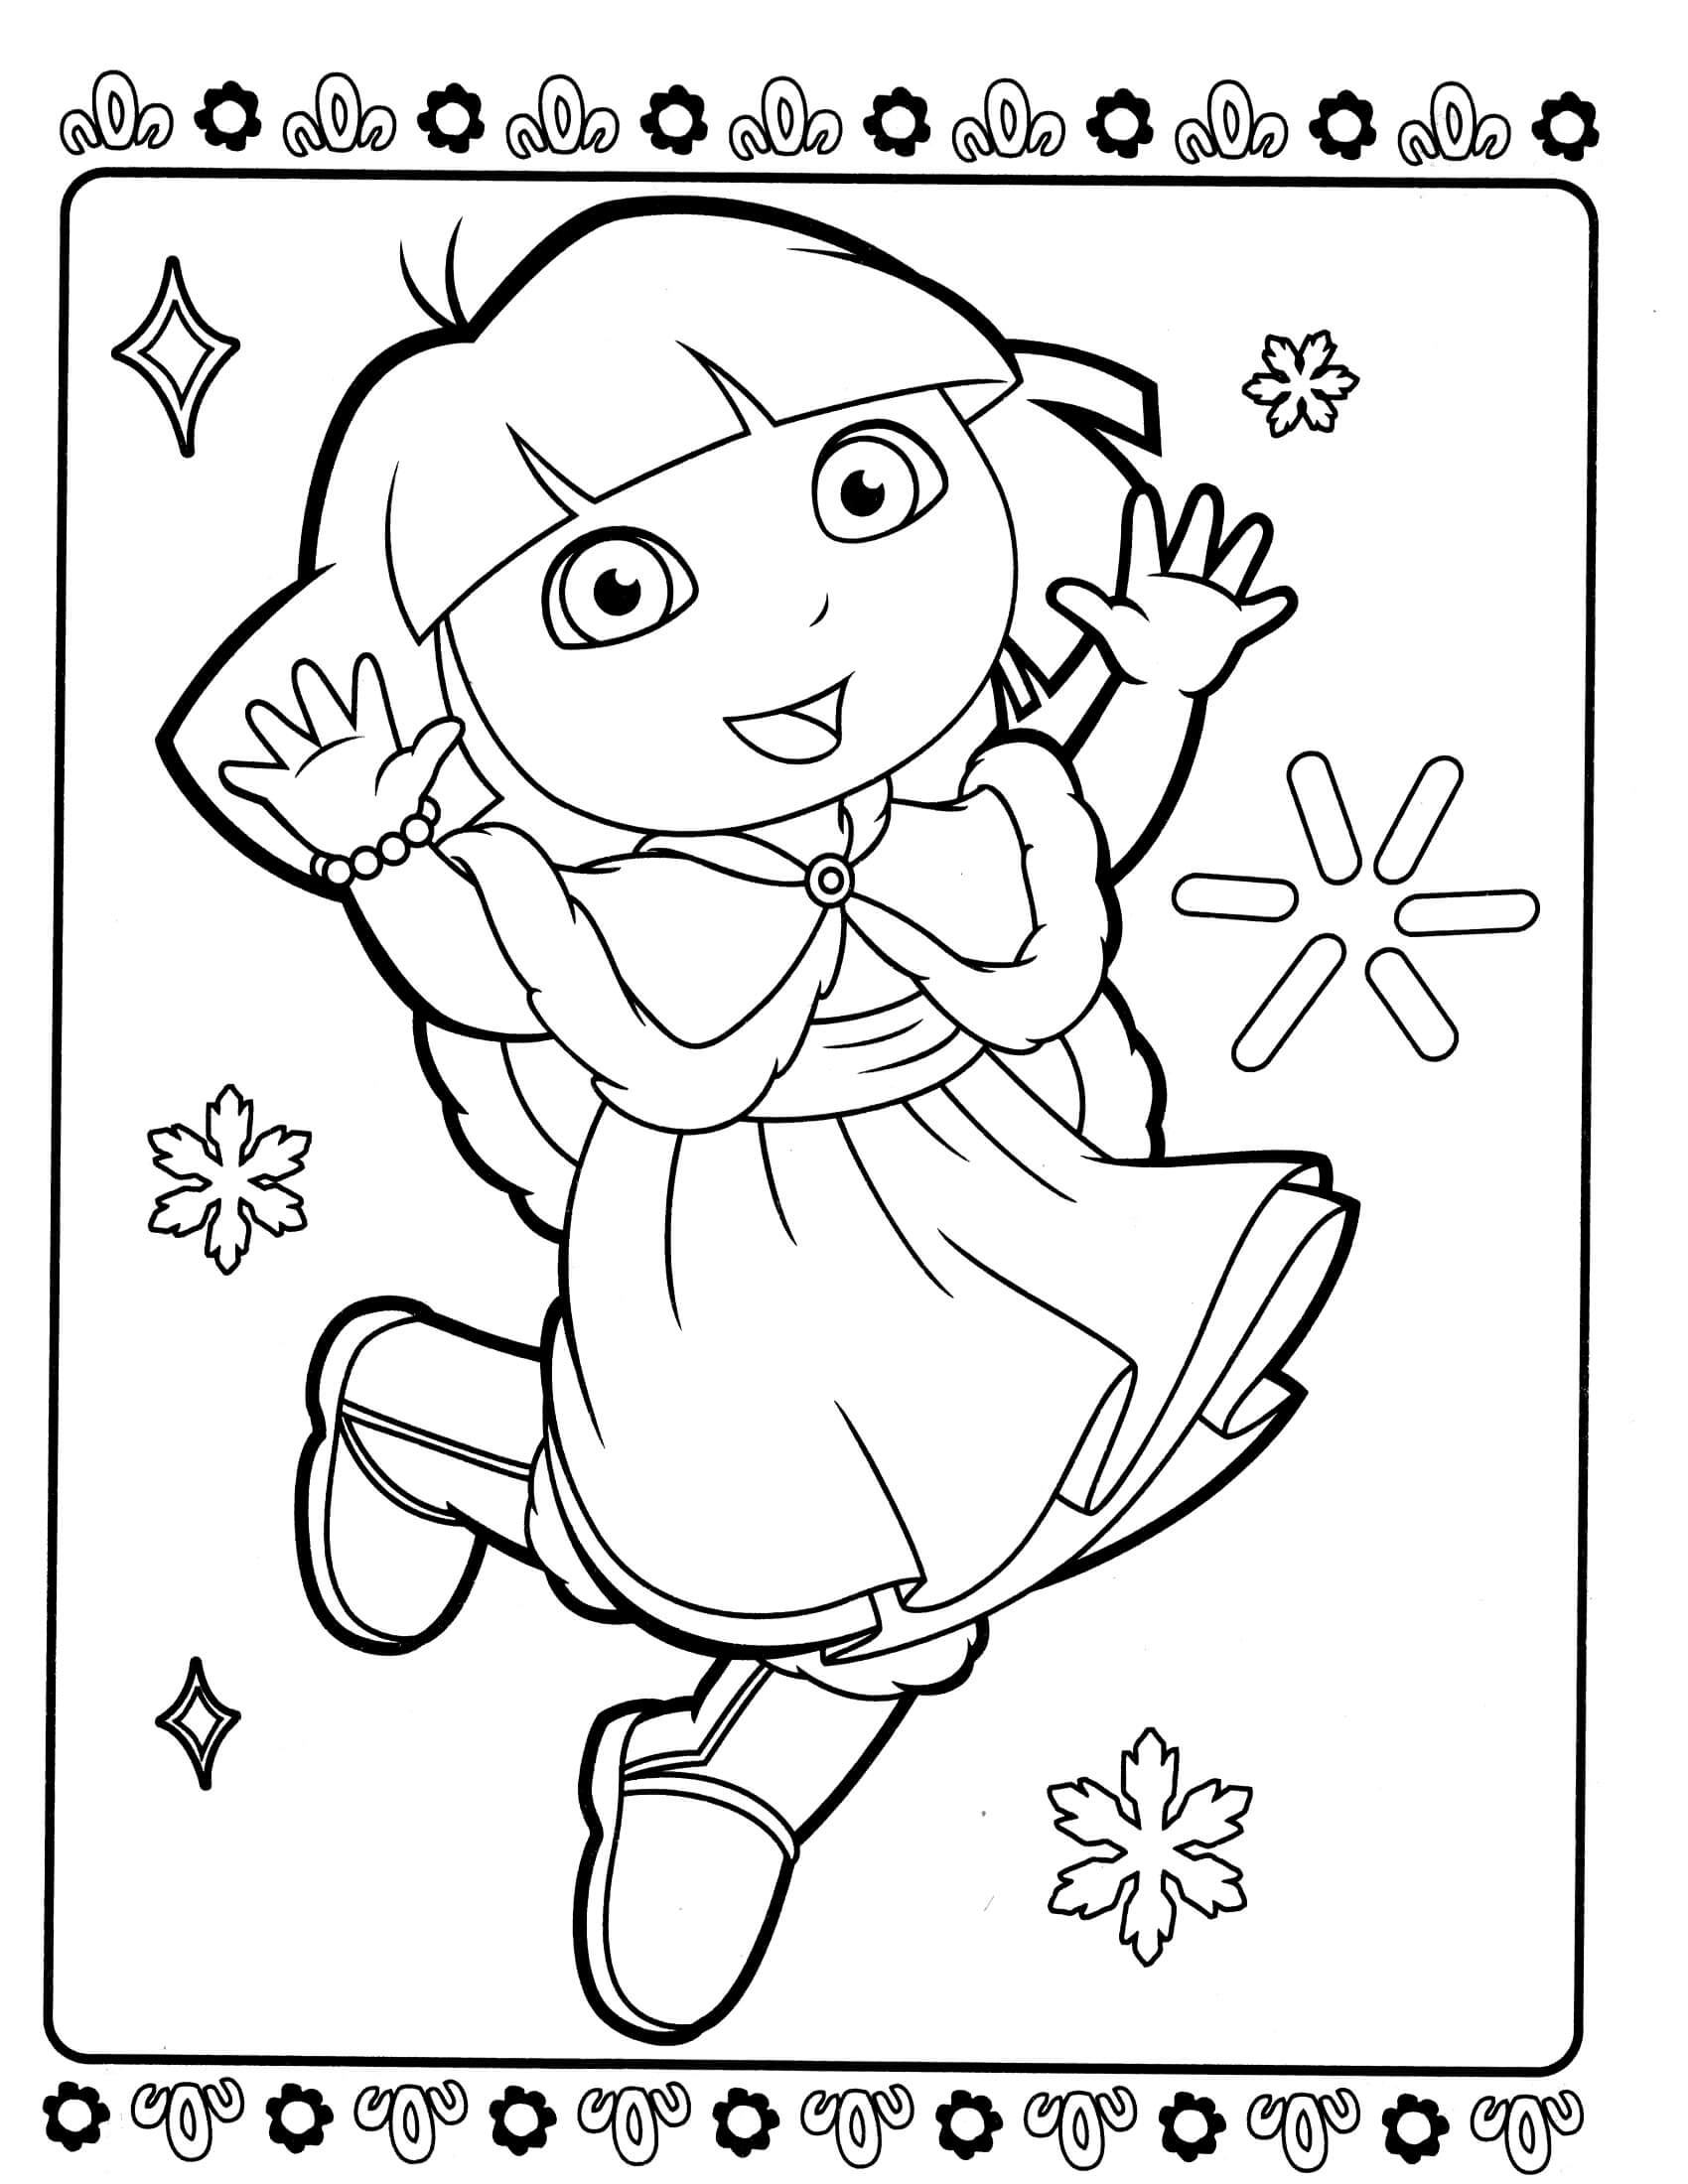 dora colouring pages printable dora the explorer coloring pages download and print dora colouring pages dora printable